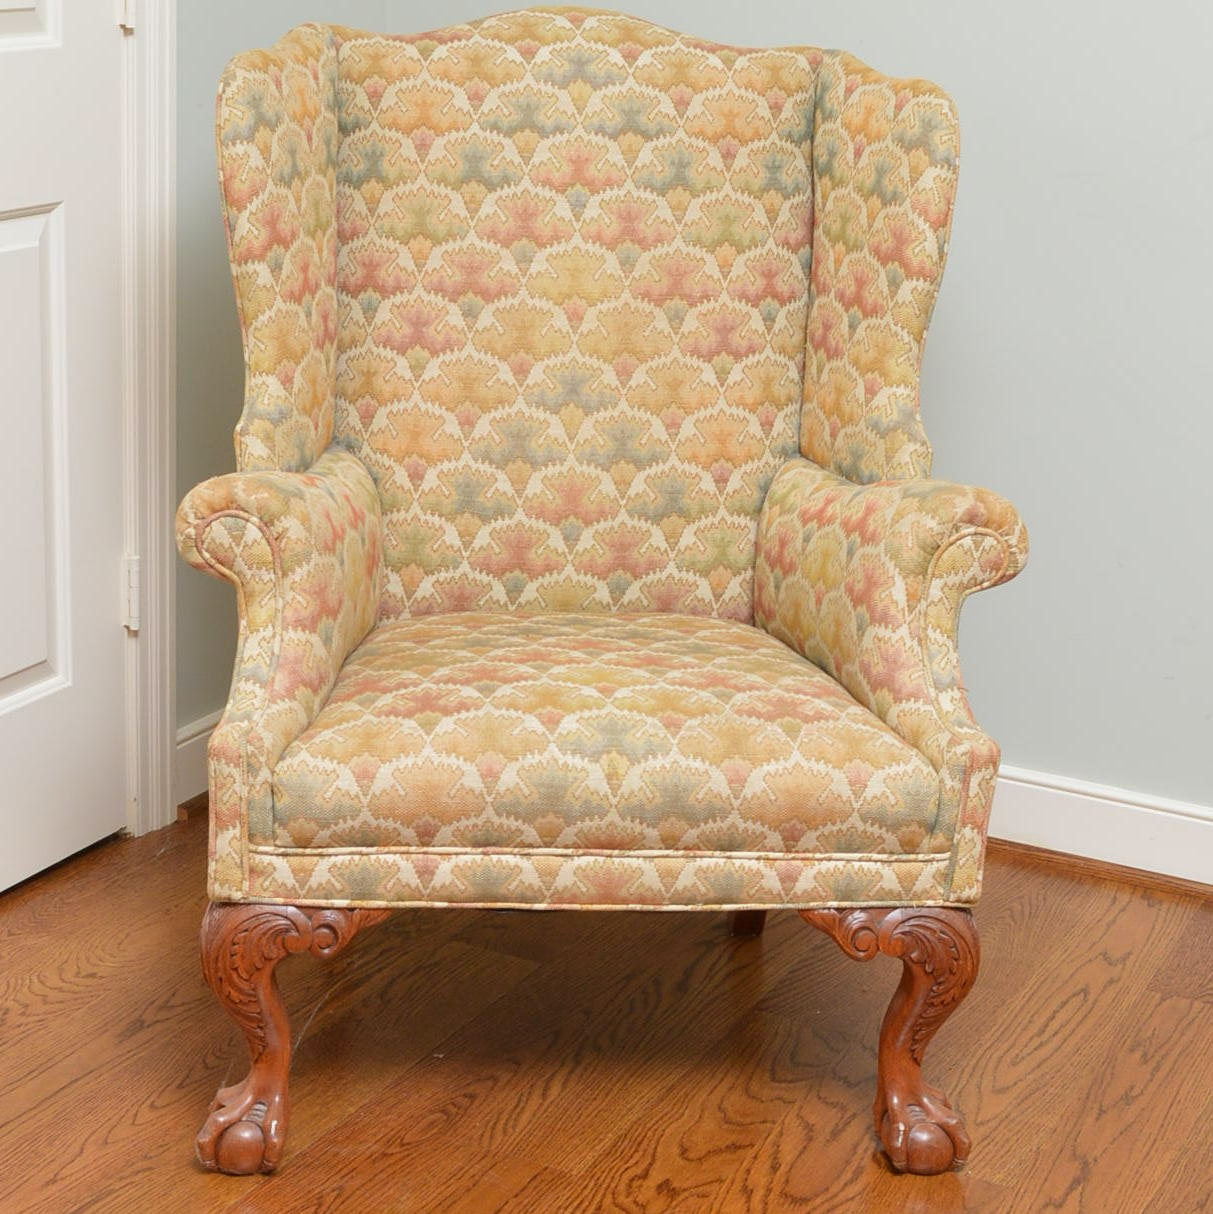 Vintage Queen Anne Style Upholstered Wingback Armchair